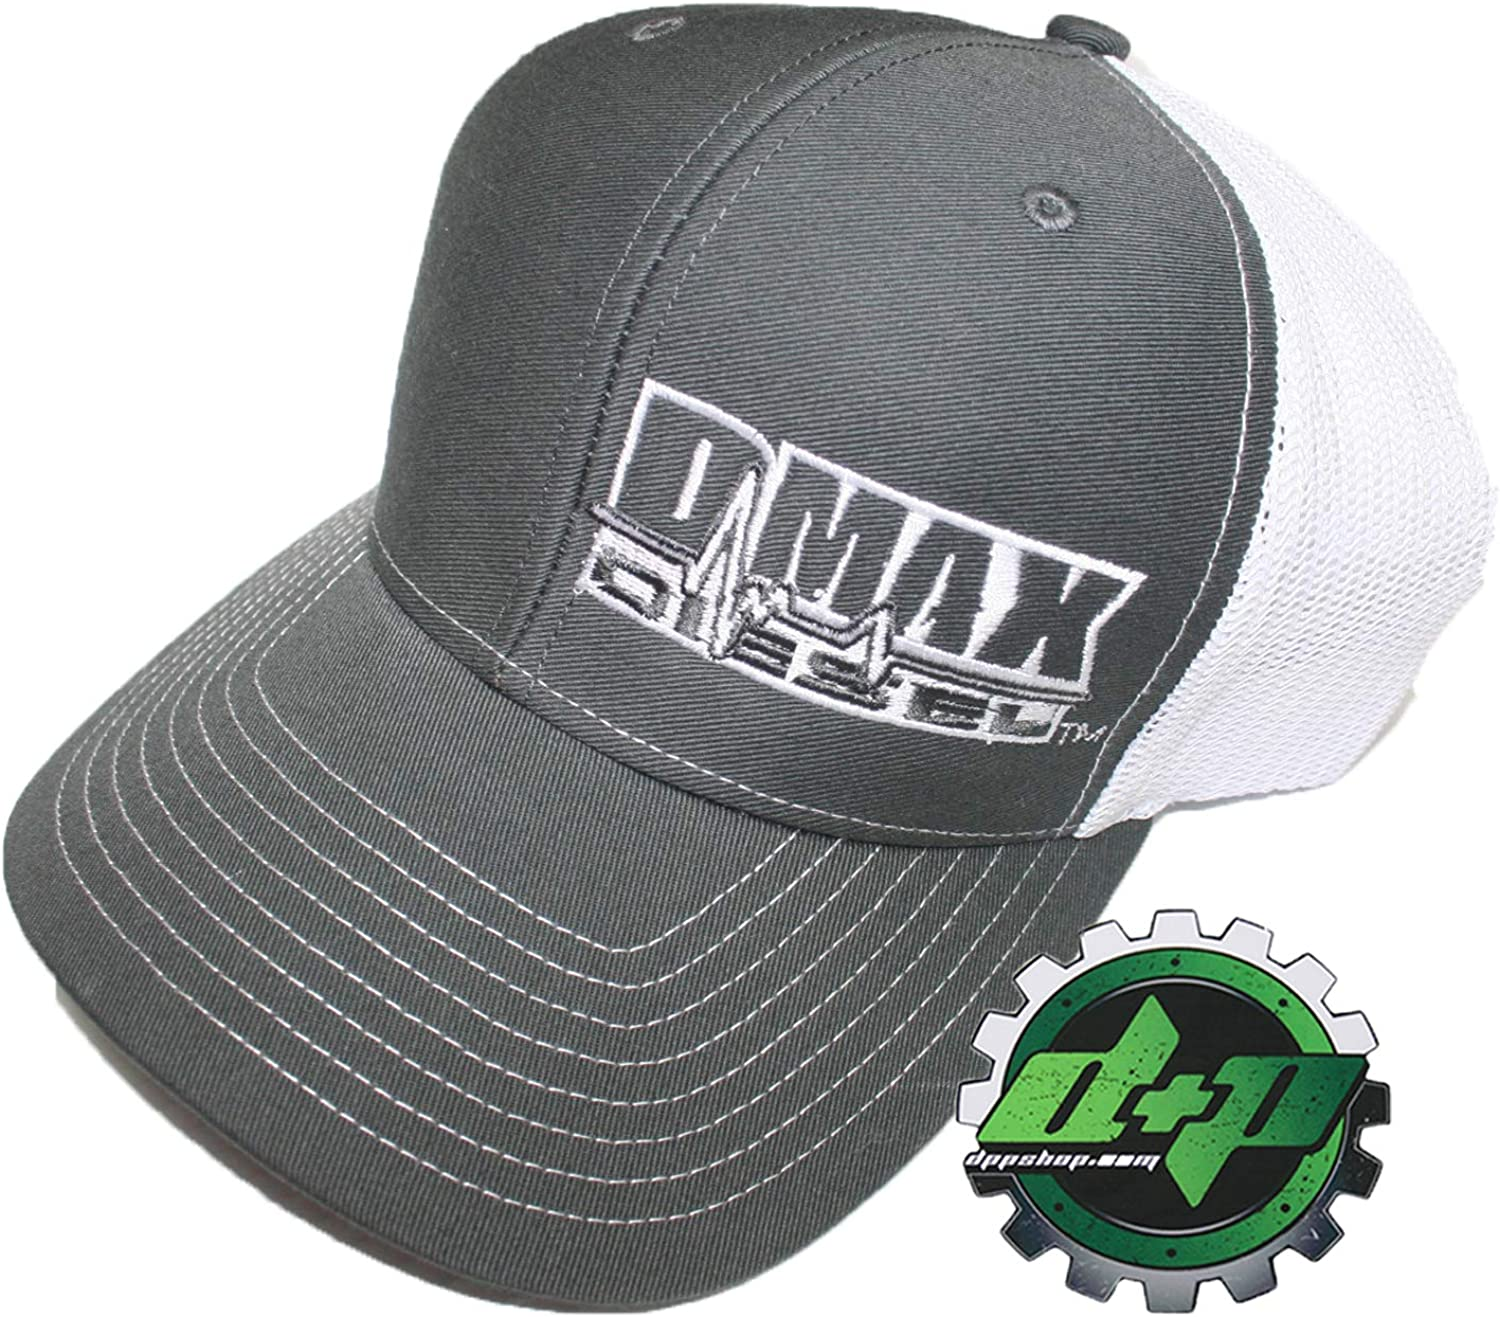 Diesel Power Plus Dmax Duramax Richardson Trucker Hat Ball Mesh Grey White Snap Back Mesh